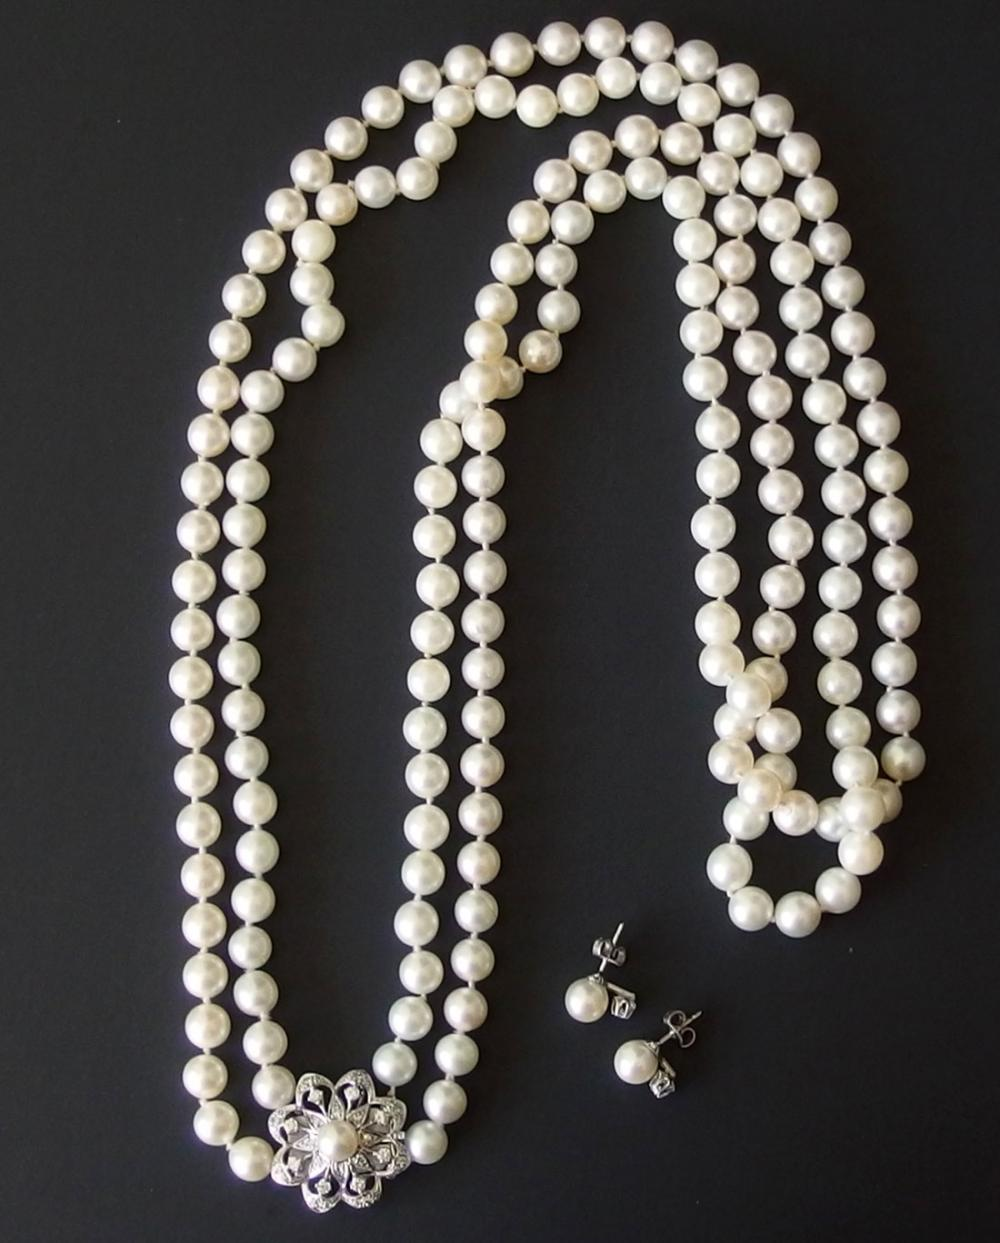 14KT GOLD DIAMOND PEARL NECKLACE EARRING SET